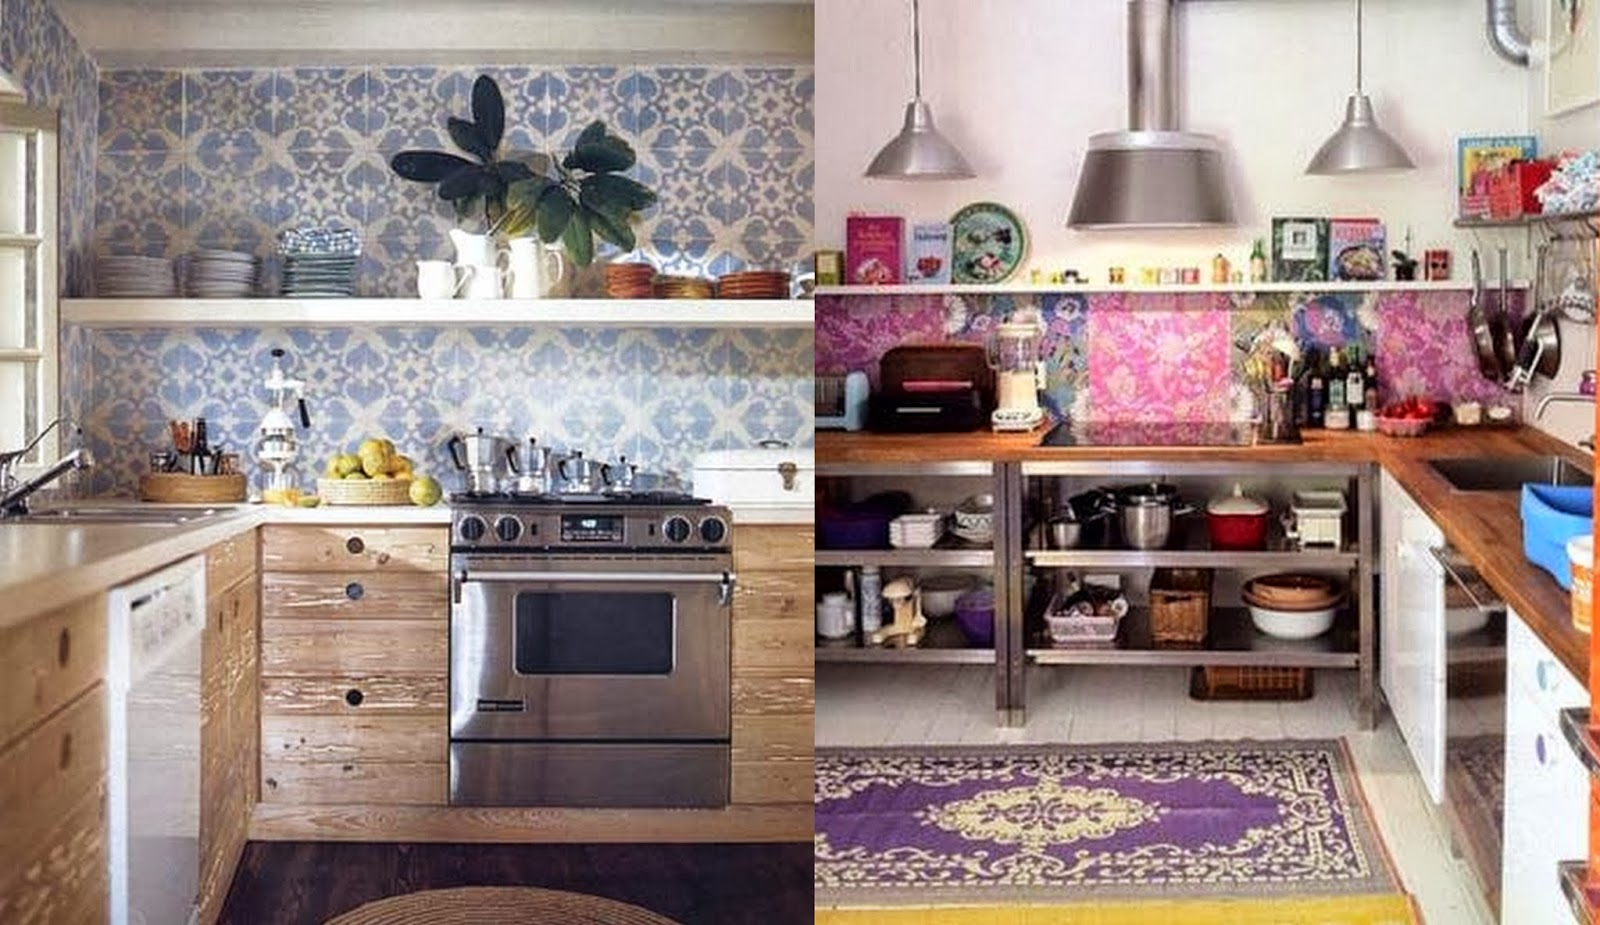 Ordinaire Boho Pattern Kitchen Decor